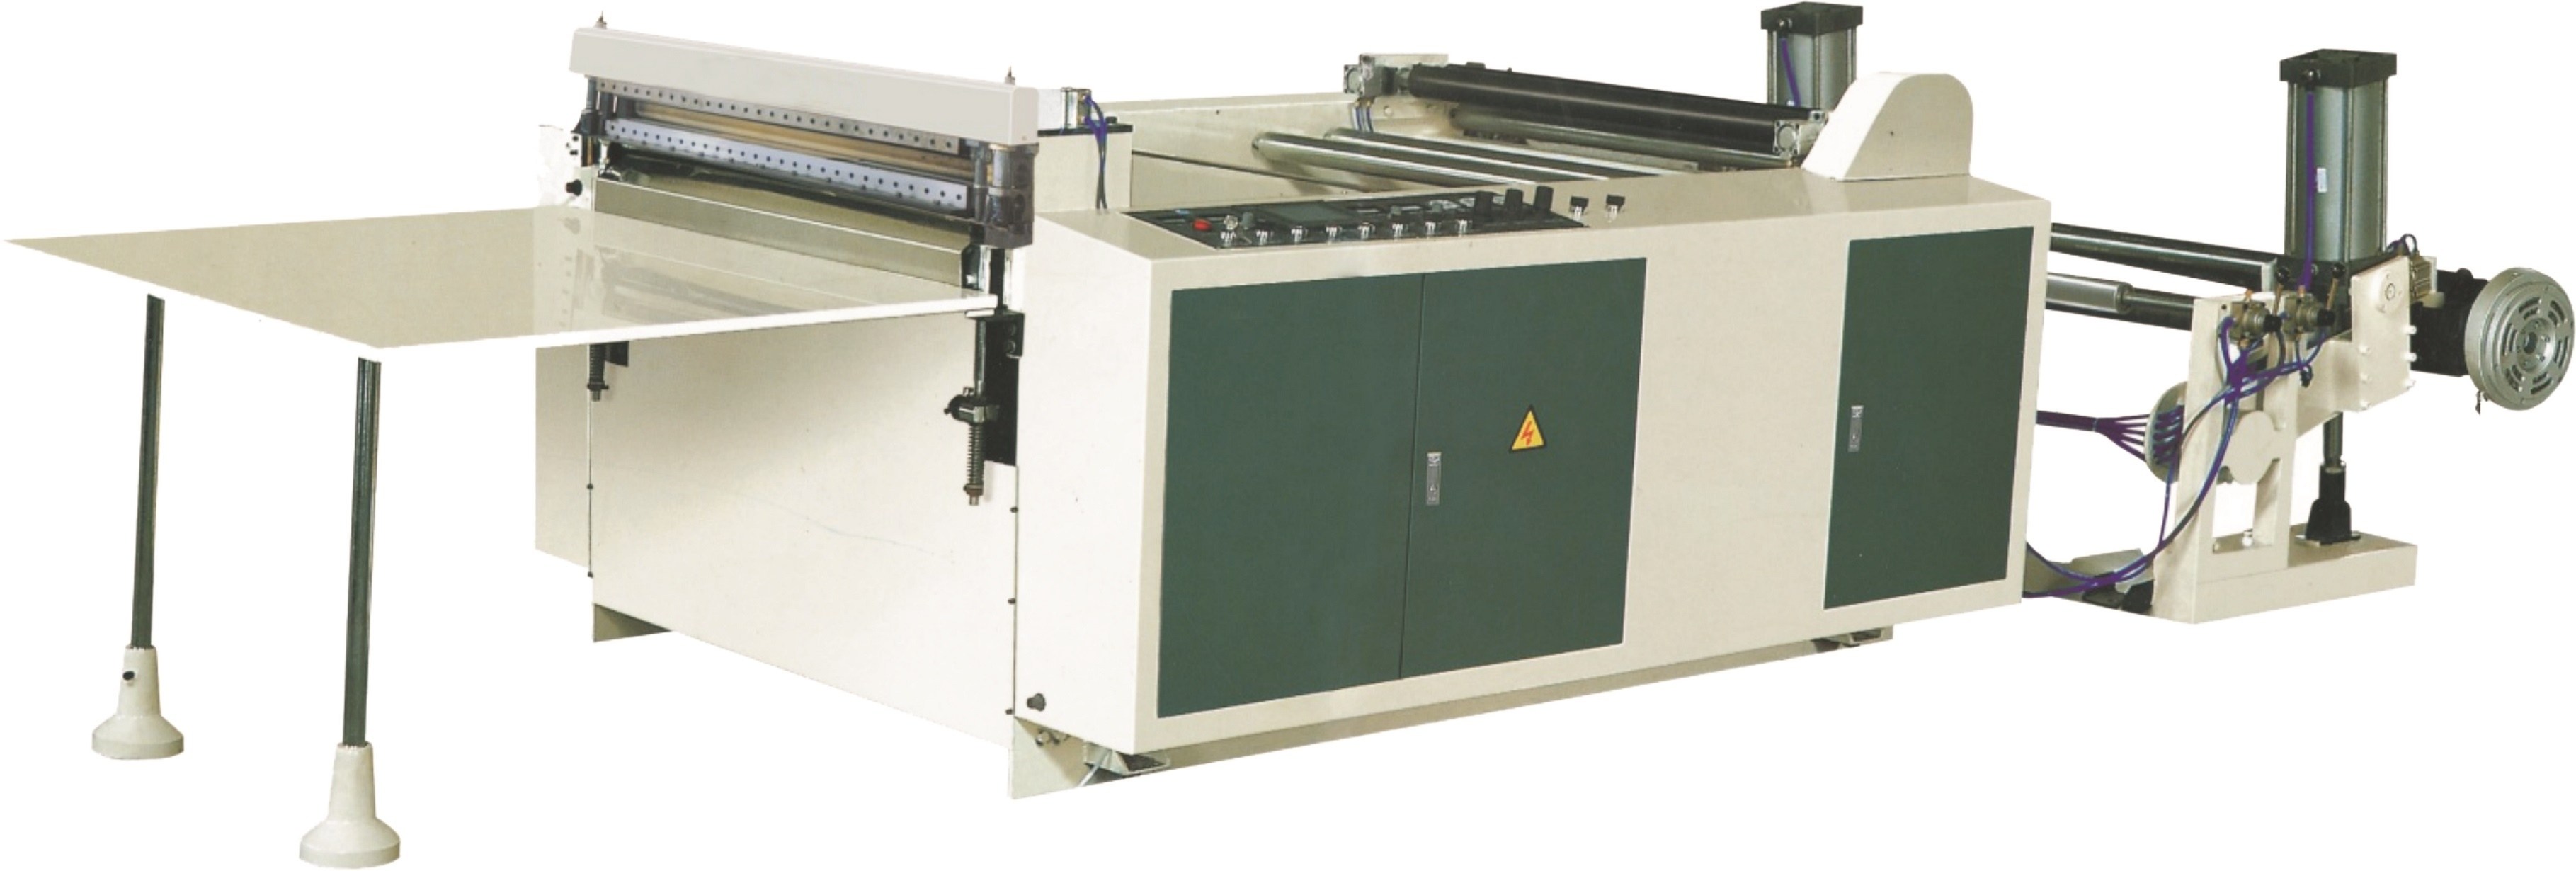 EHQ-C800/C1100/C1300/C1600 Cross Cutting Machine